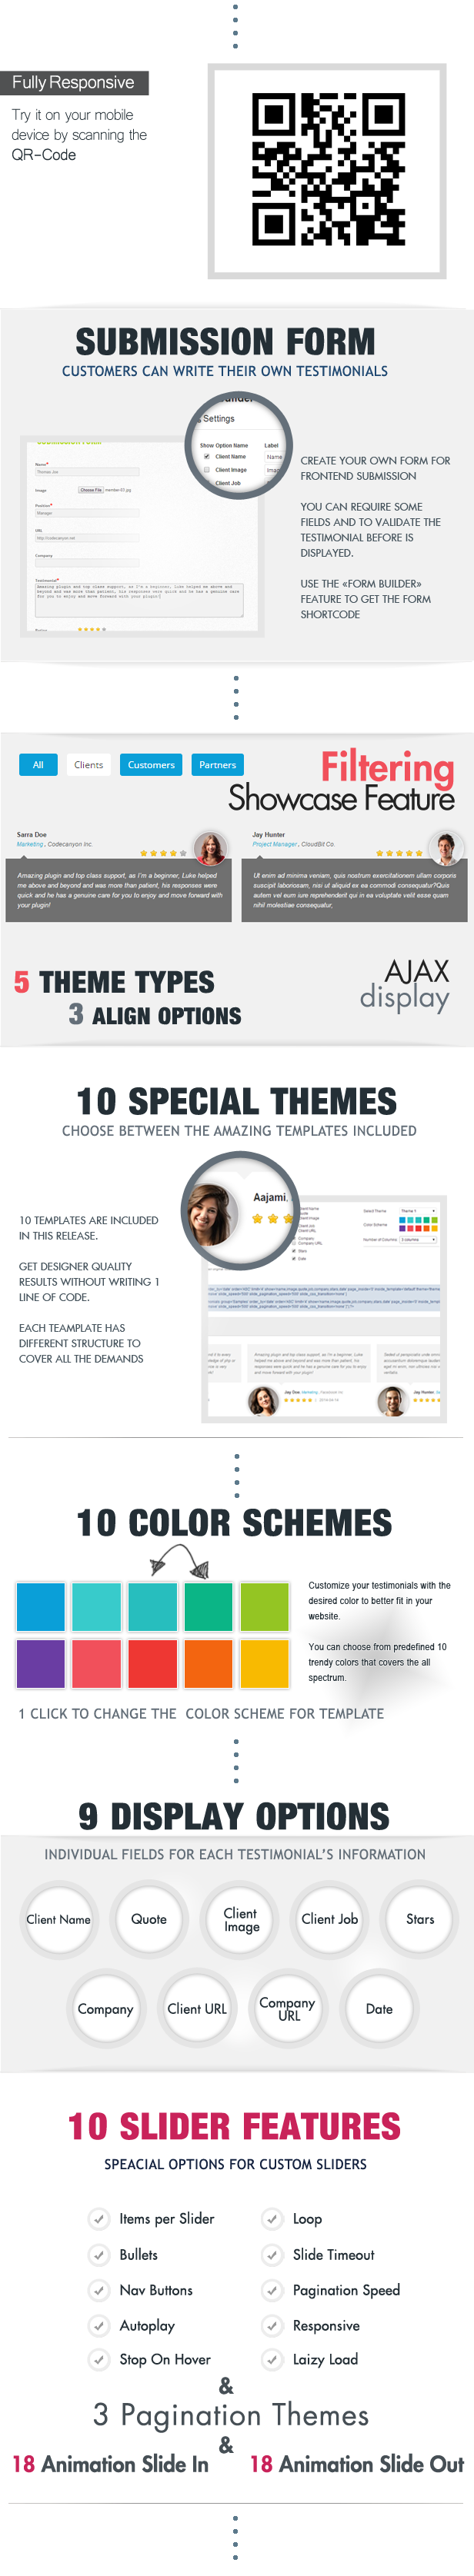 Testimonials Showcase WordPress Plugin - 2